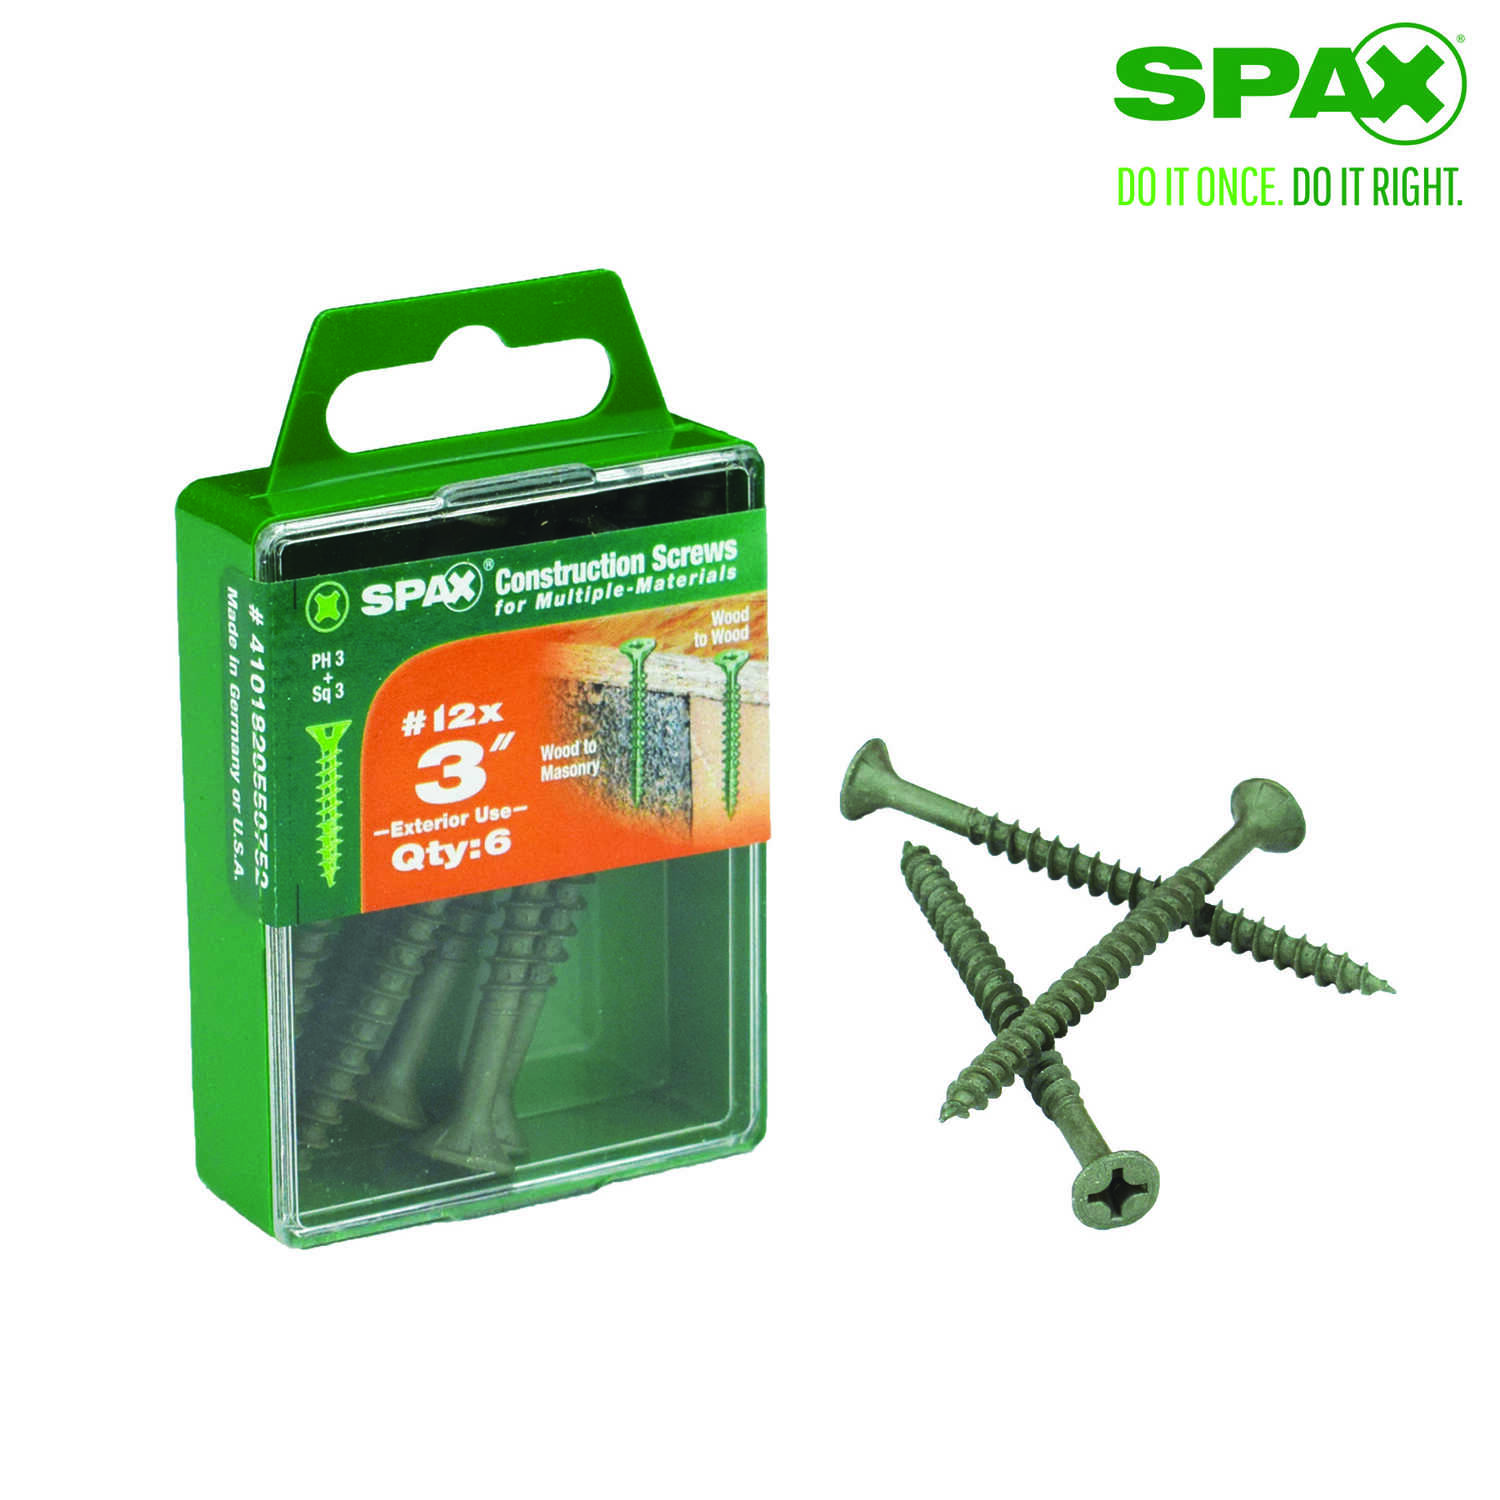 SPAX  No. 12   x 3 in. L Phillips/Square  Flat  High Corrosion Resistant  Steel  Multi-Purpose Screw